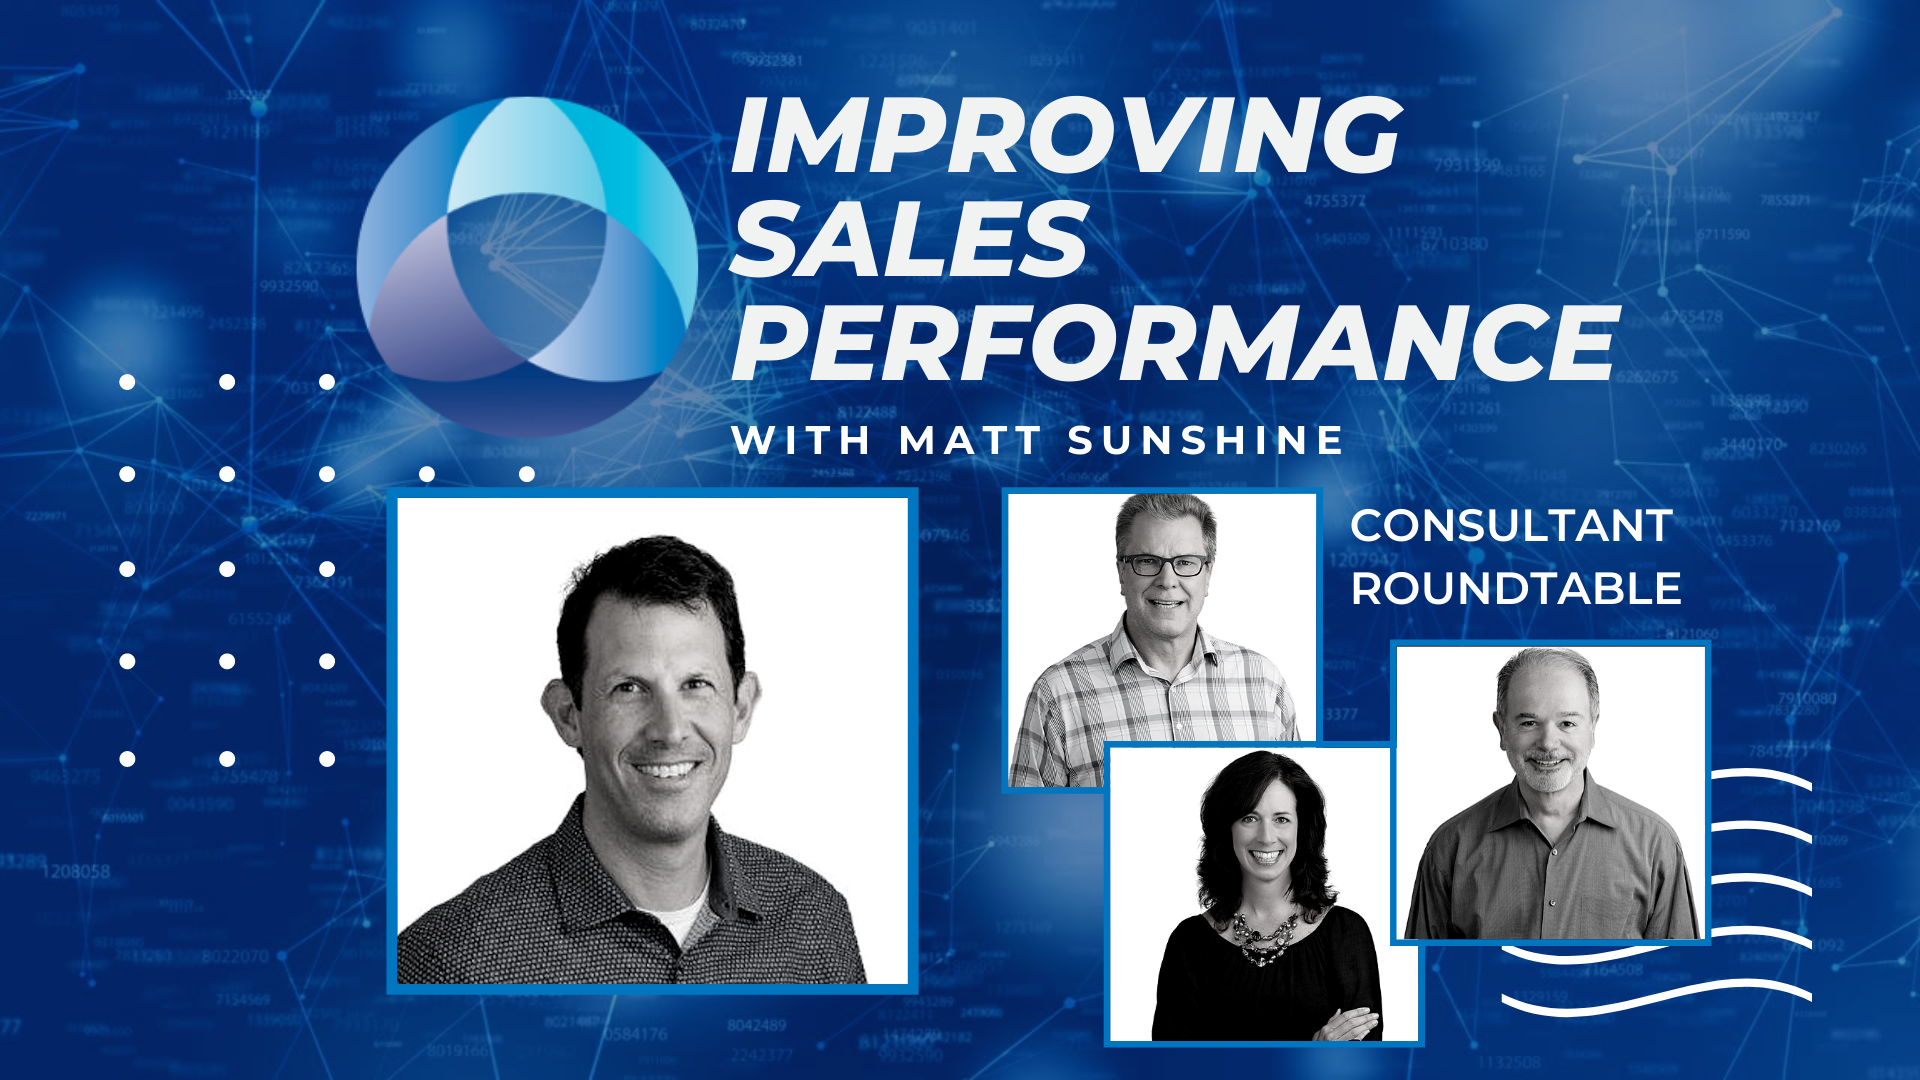 Improving Sales Performance Consultant Roundtable